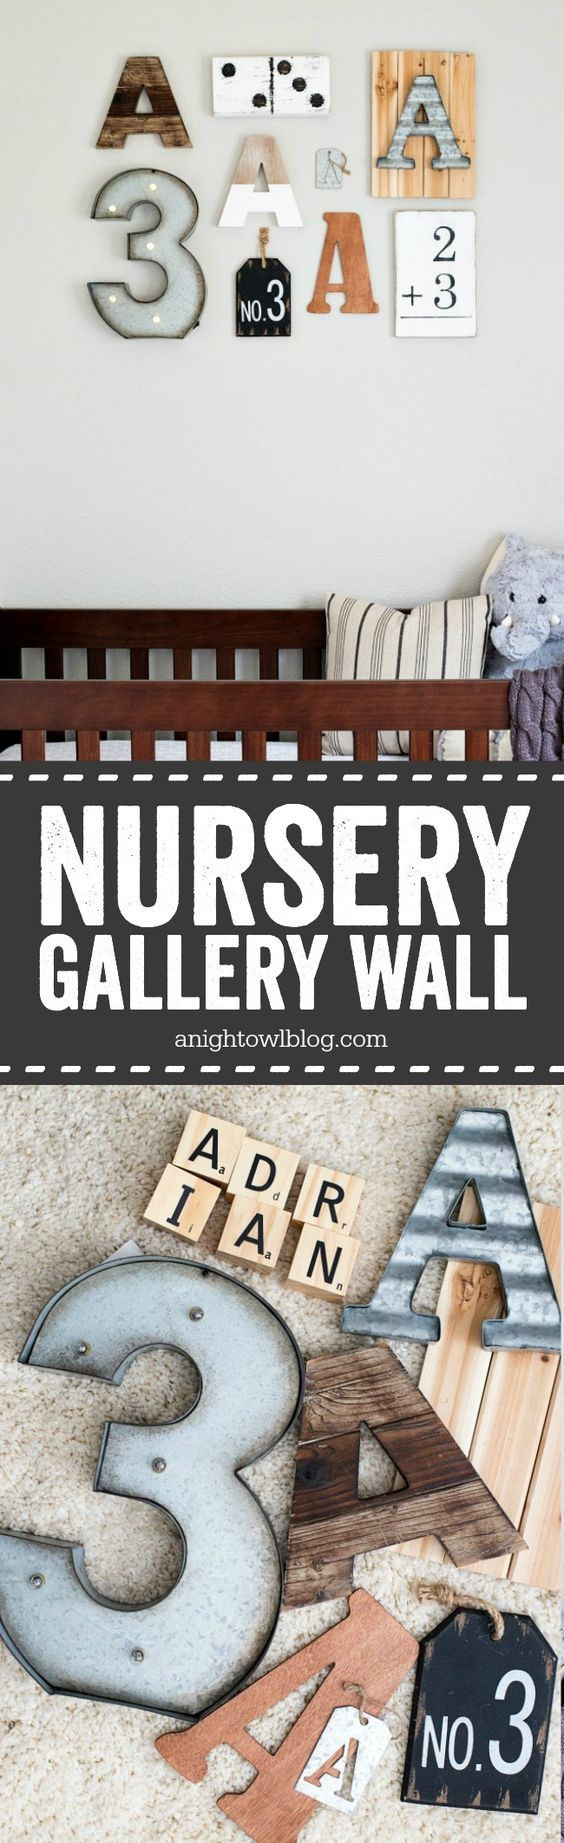 Tips on how to curate and create a personalized Nursery Gallery Wall!